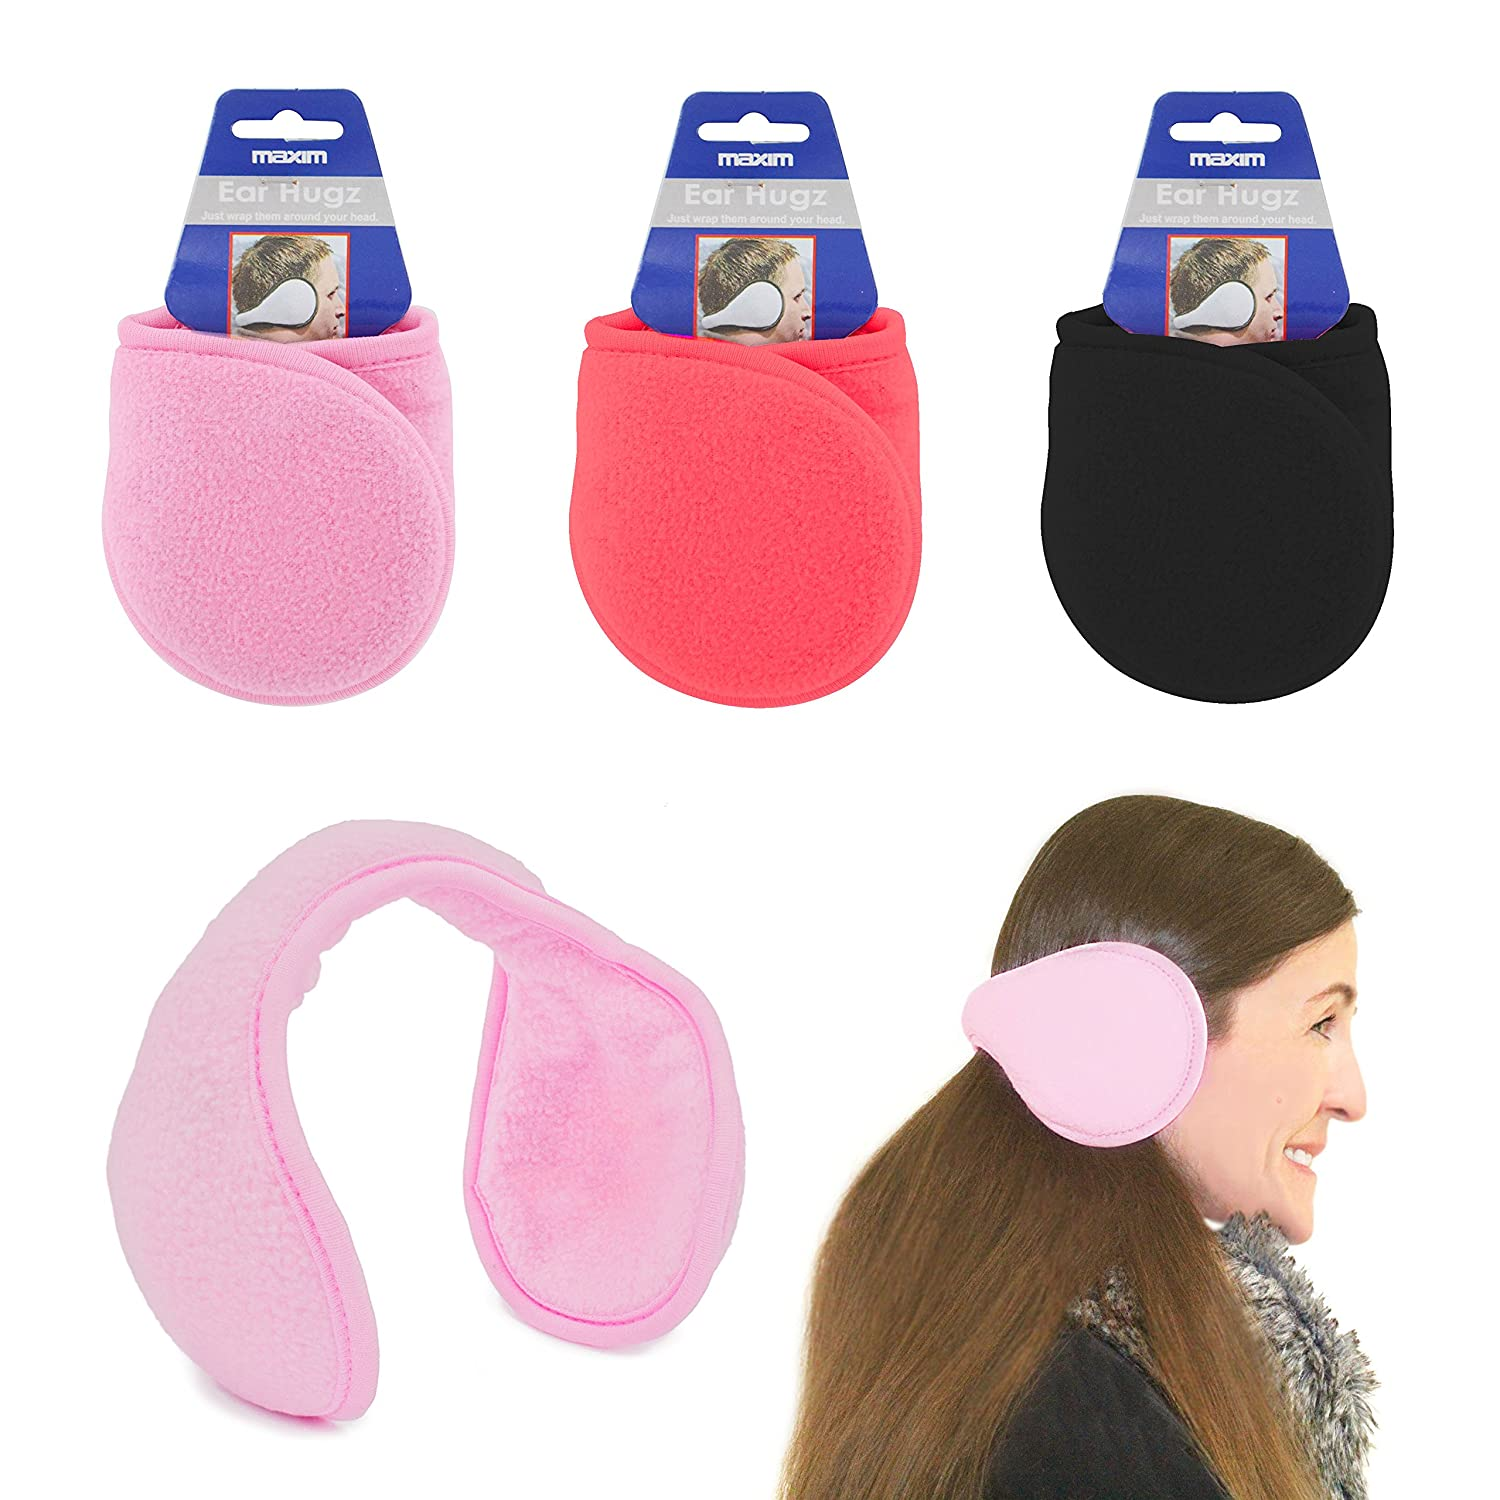 Ear Muffs Wrap around Winter Warmers soft Fleece UKayed ® Winter Warm Ears Various Colour (Red) Globatek UKASNHKTN12539